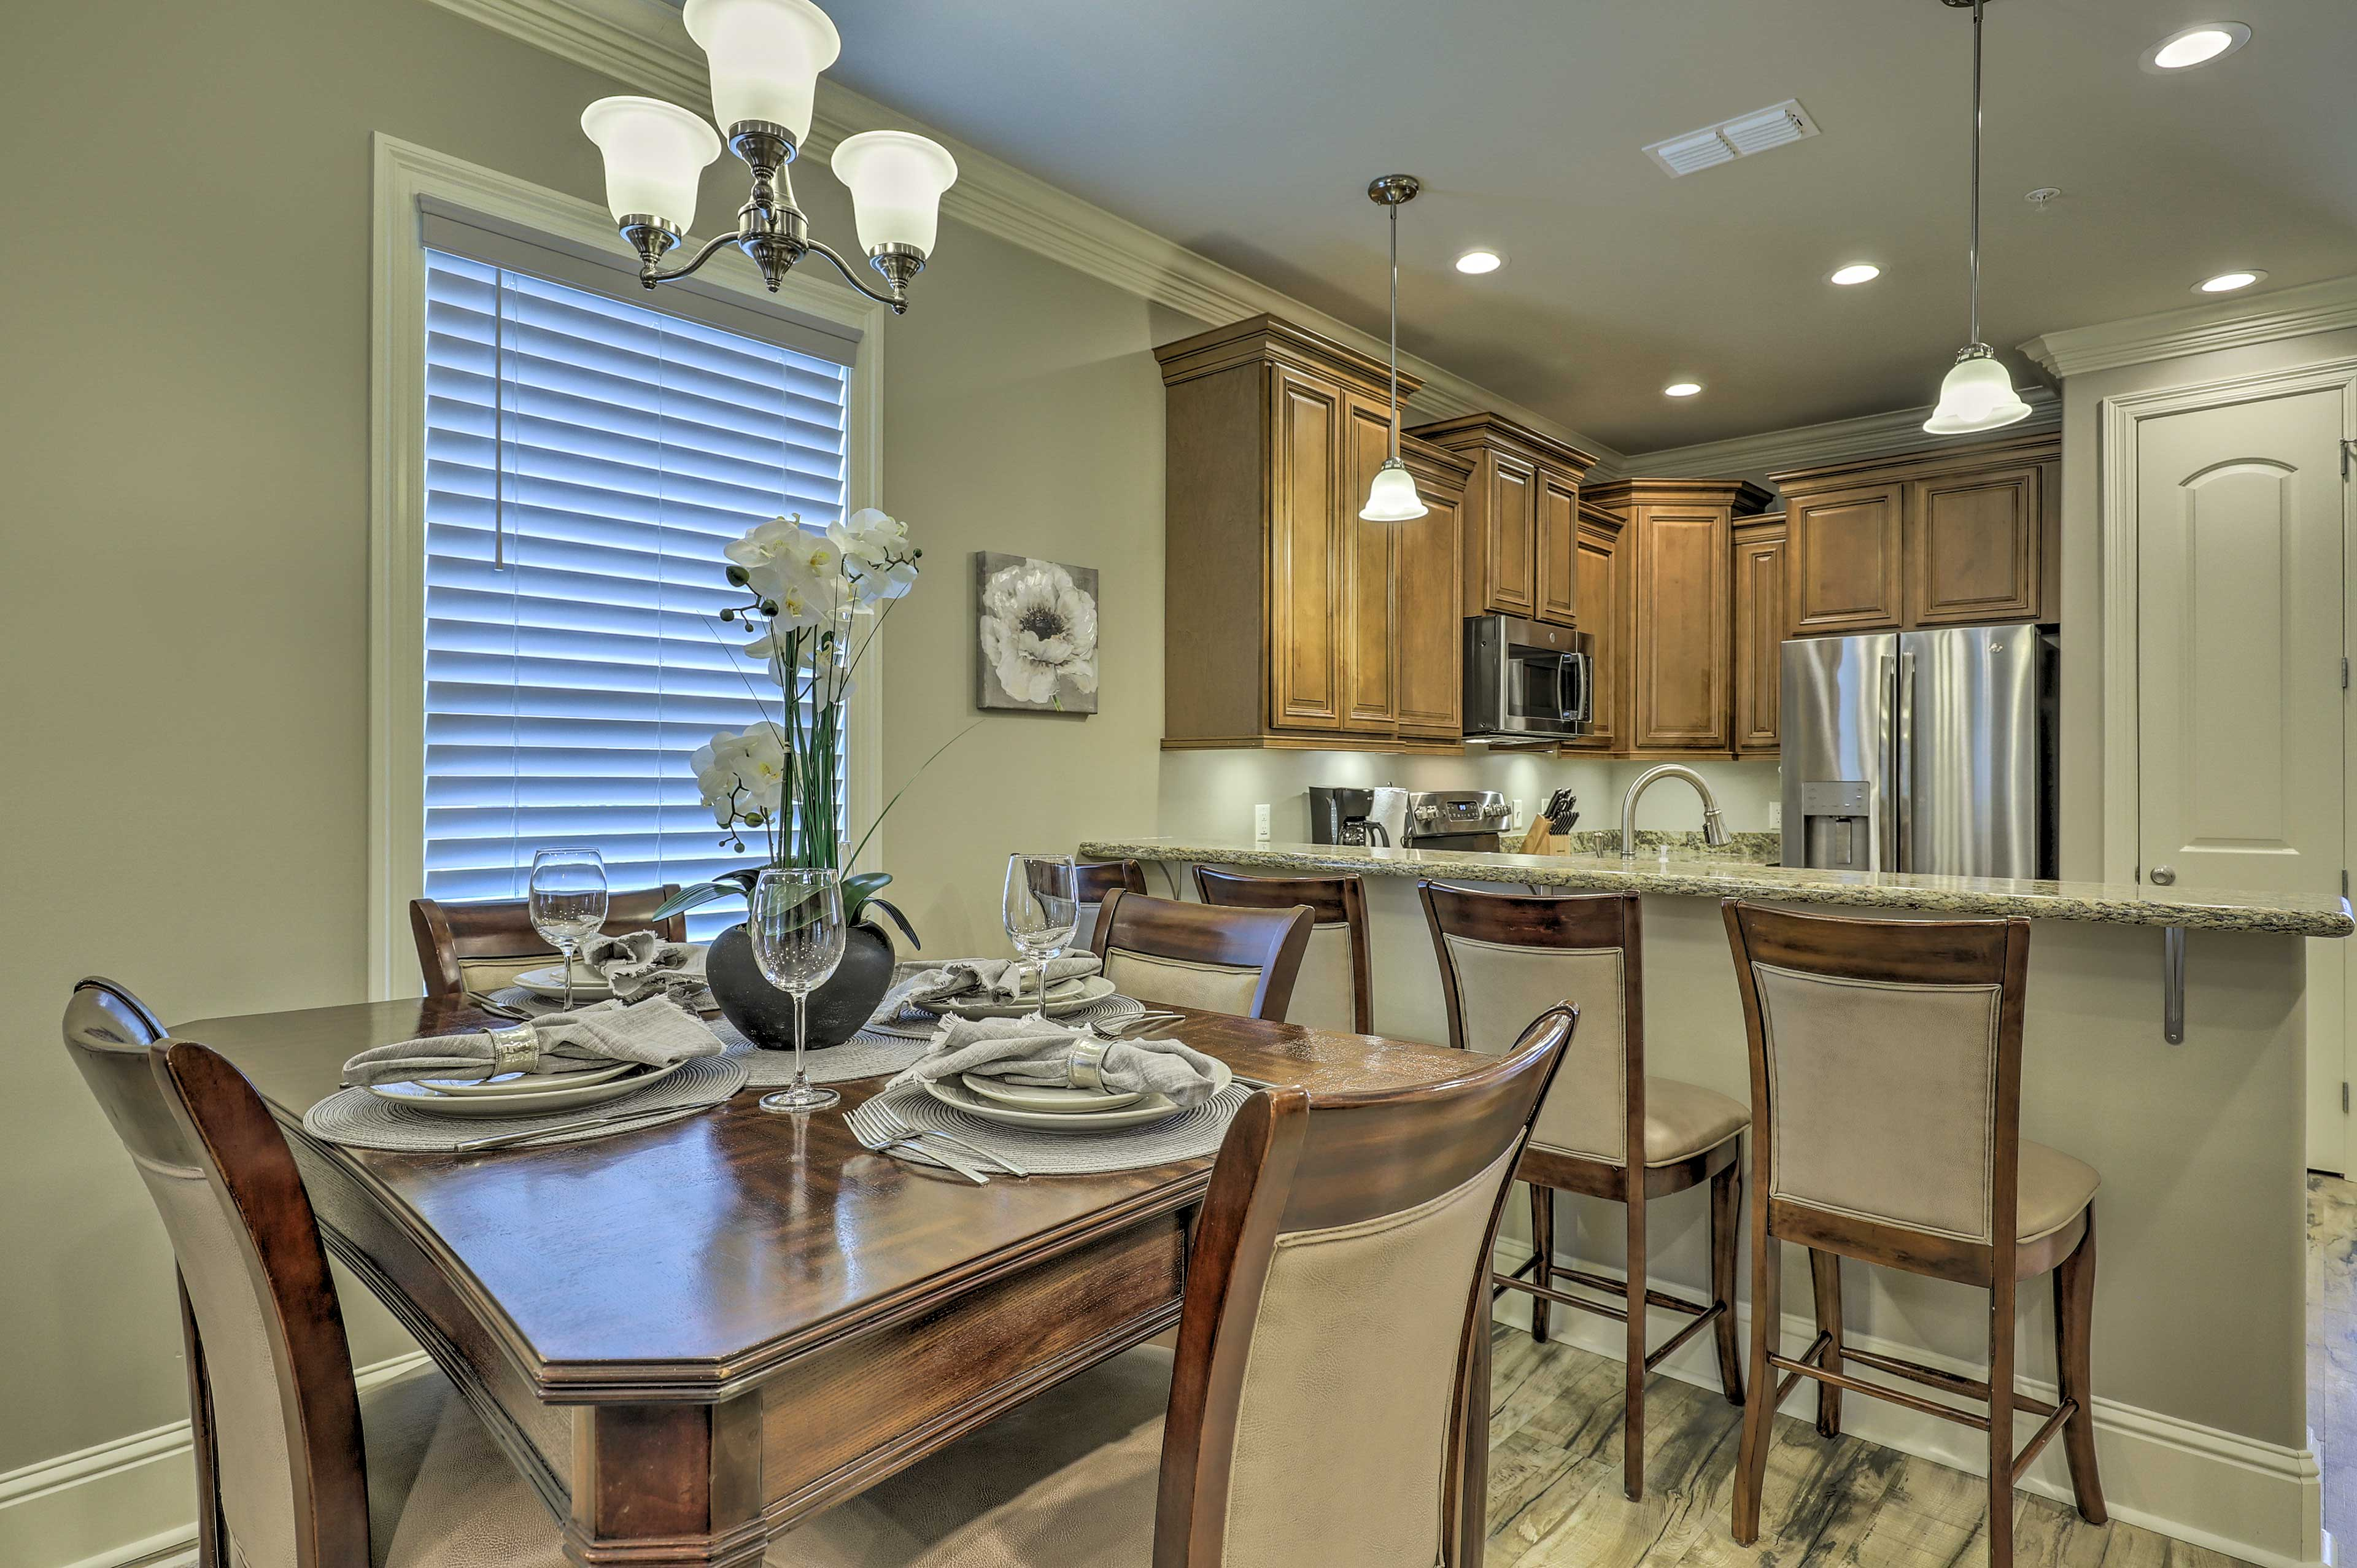 Enjoy home-cooked meals at the 4-person dining table.